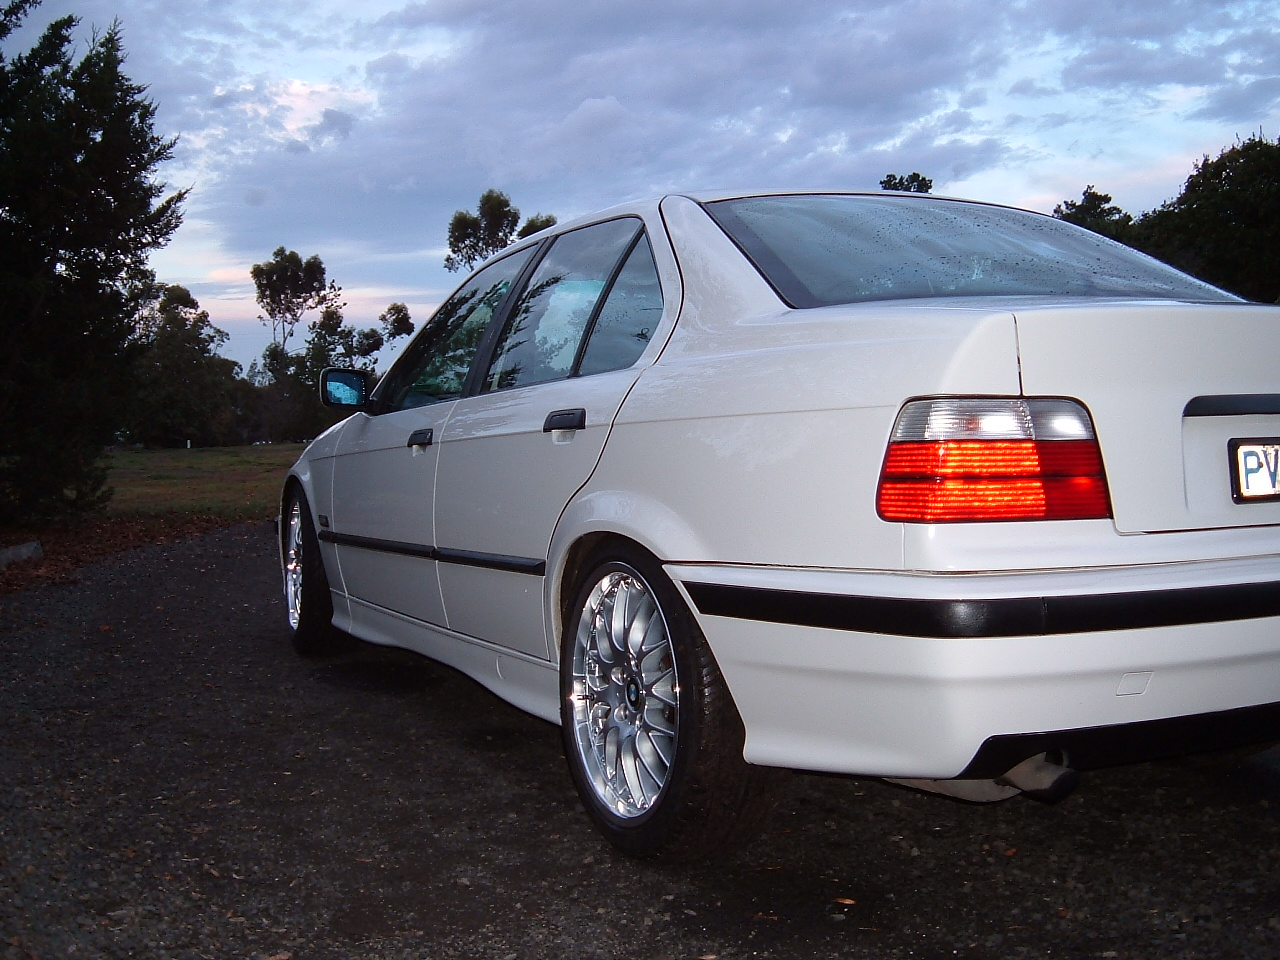 BMW 3 series 318i 1993 photo - 9